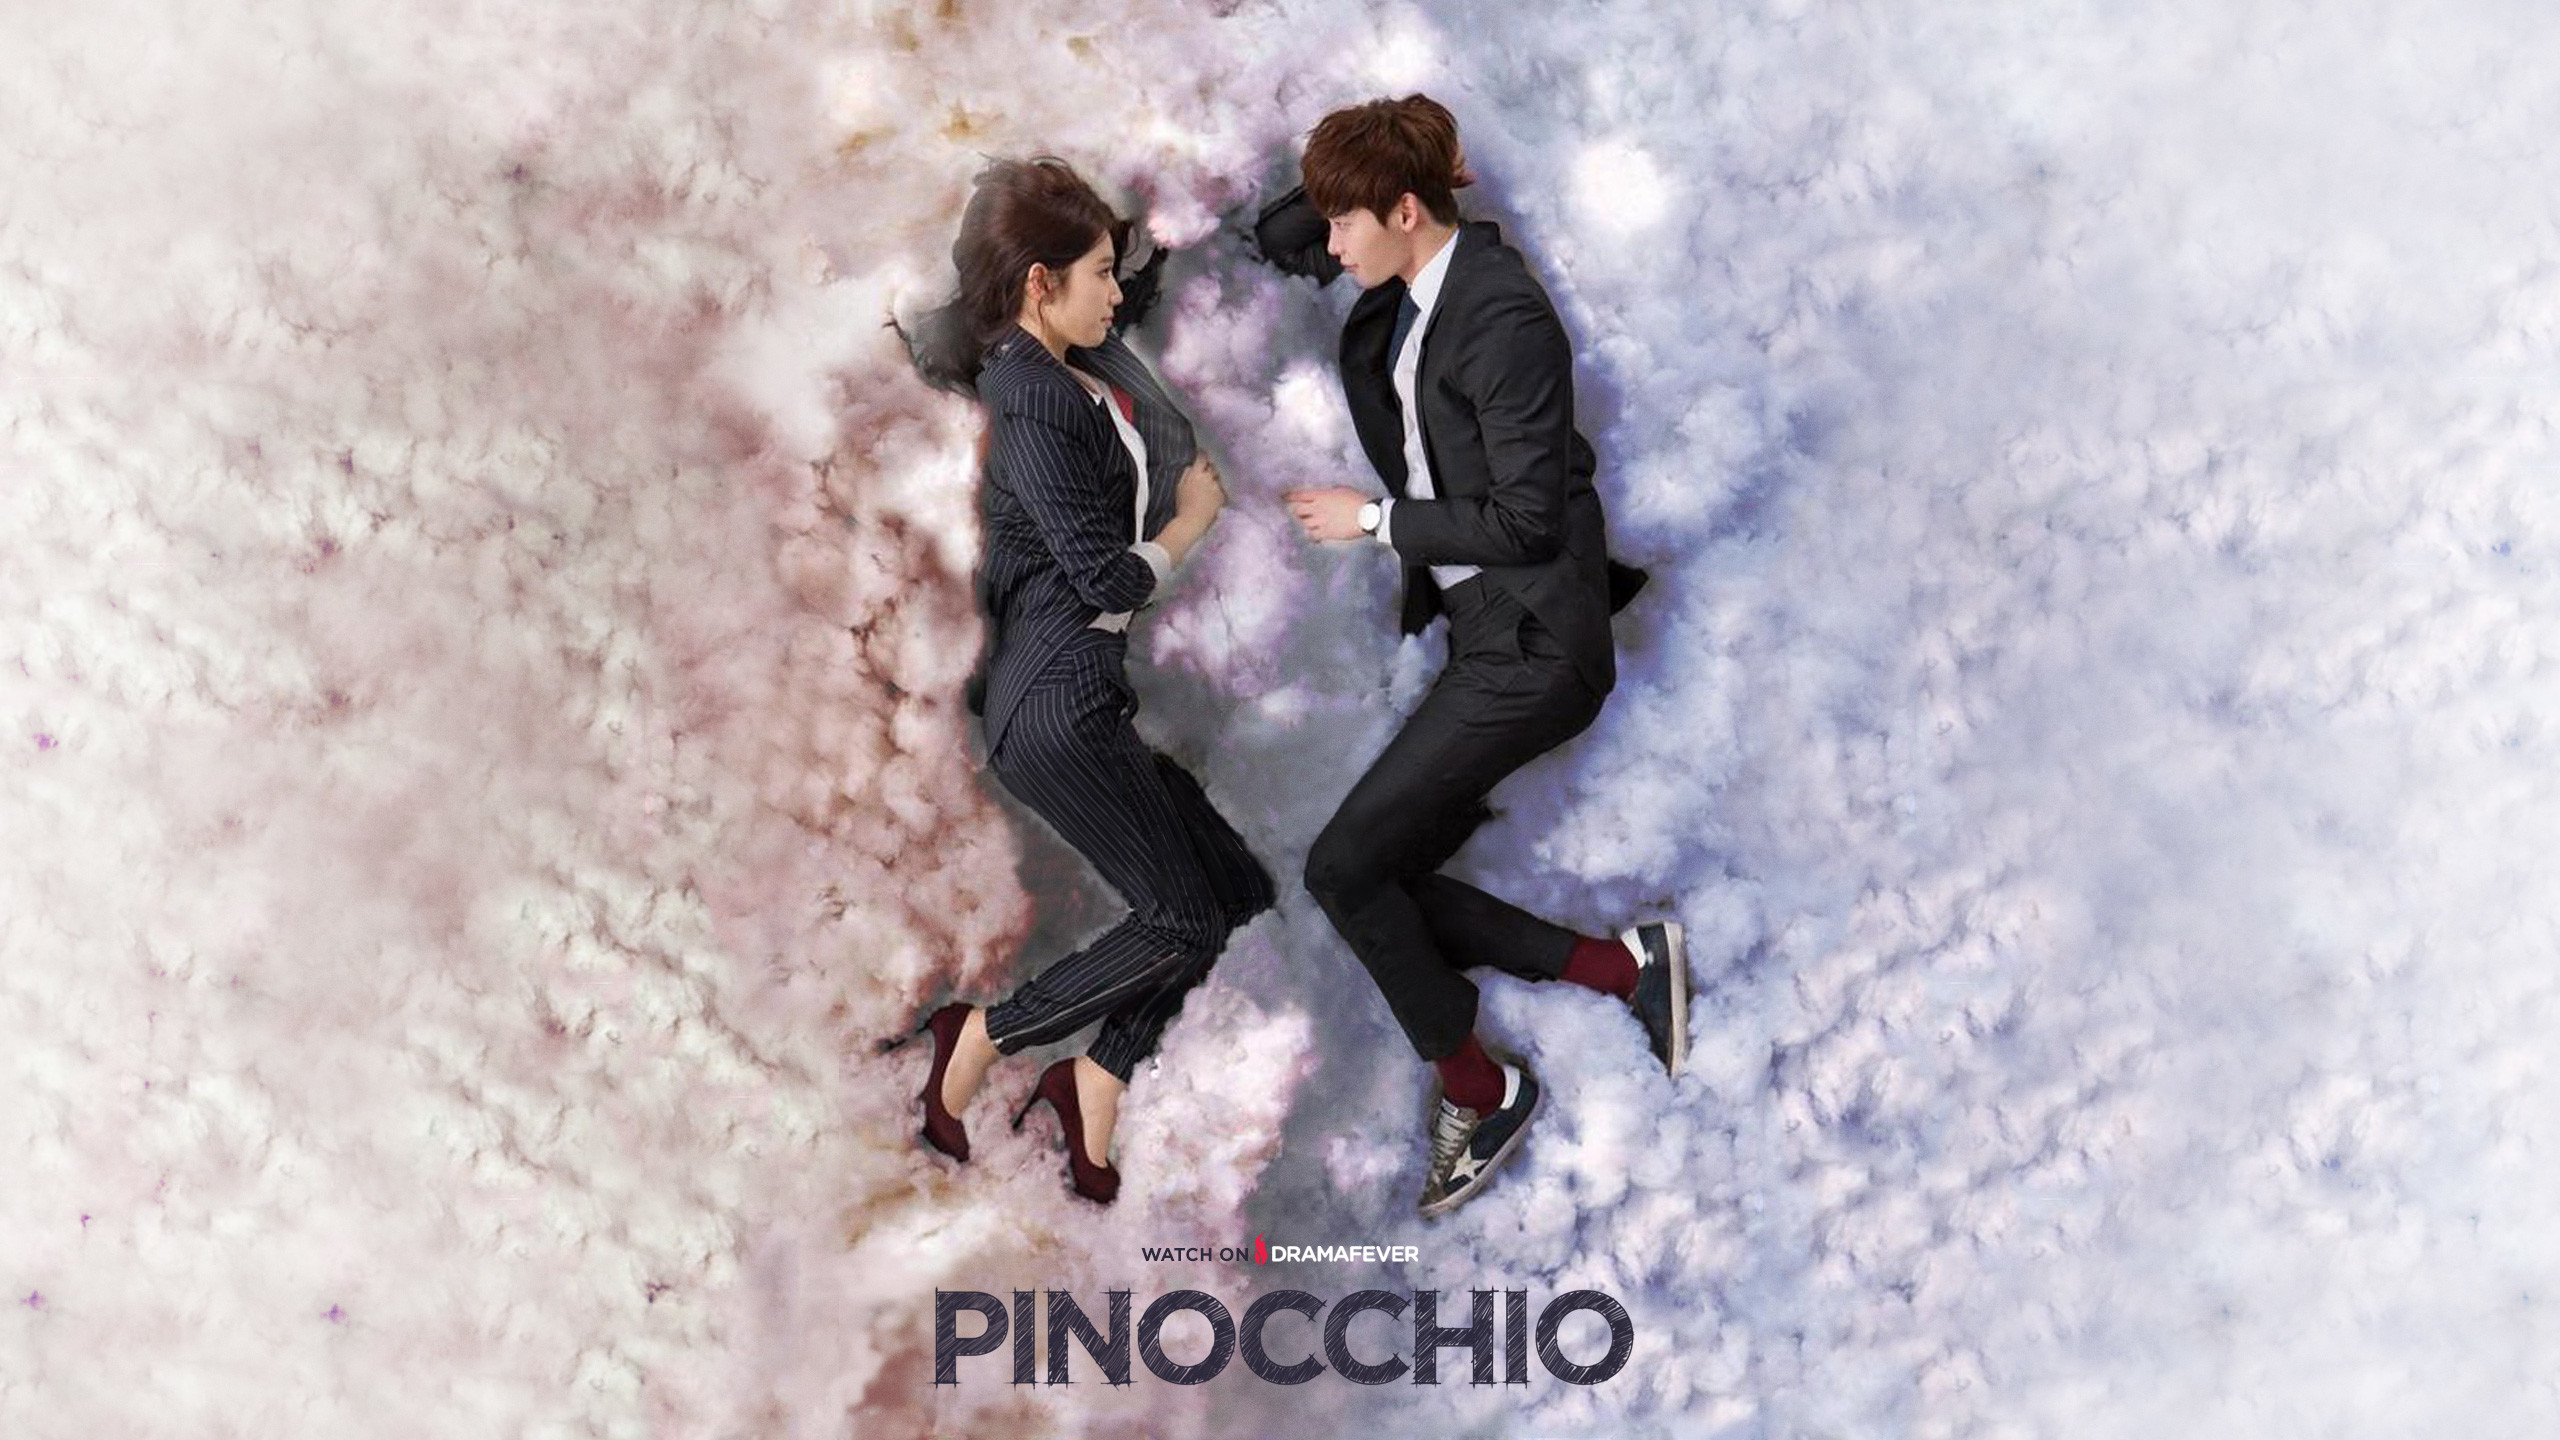 2560x1440 Download Pinocchio wallpapers for your desktop, iPhone, iPad and Android!